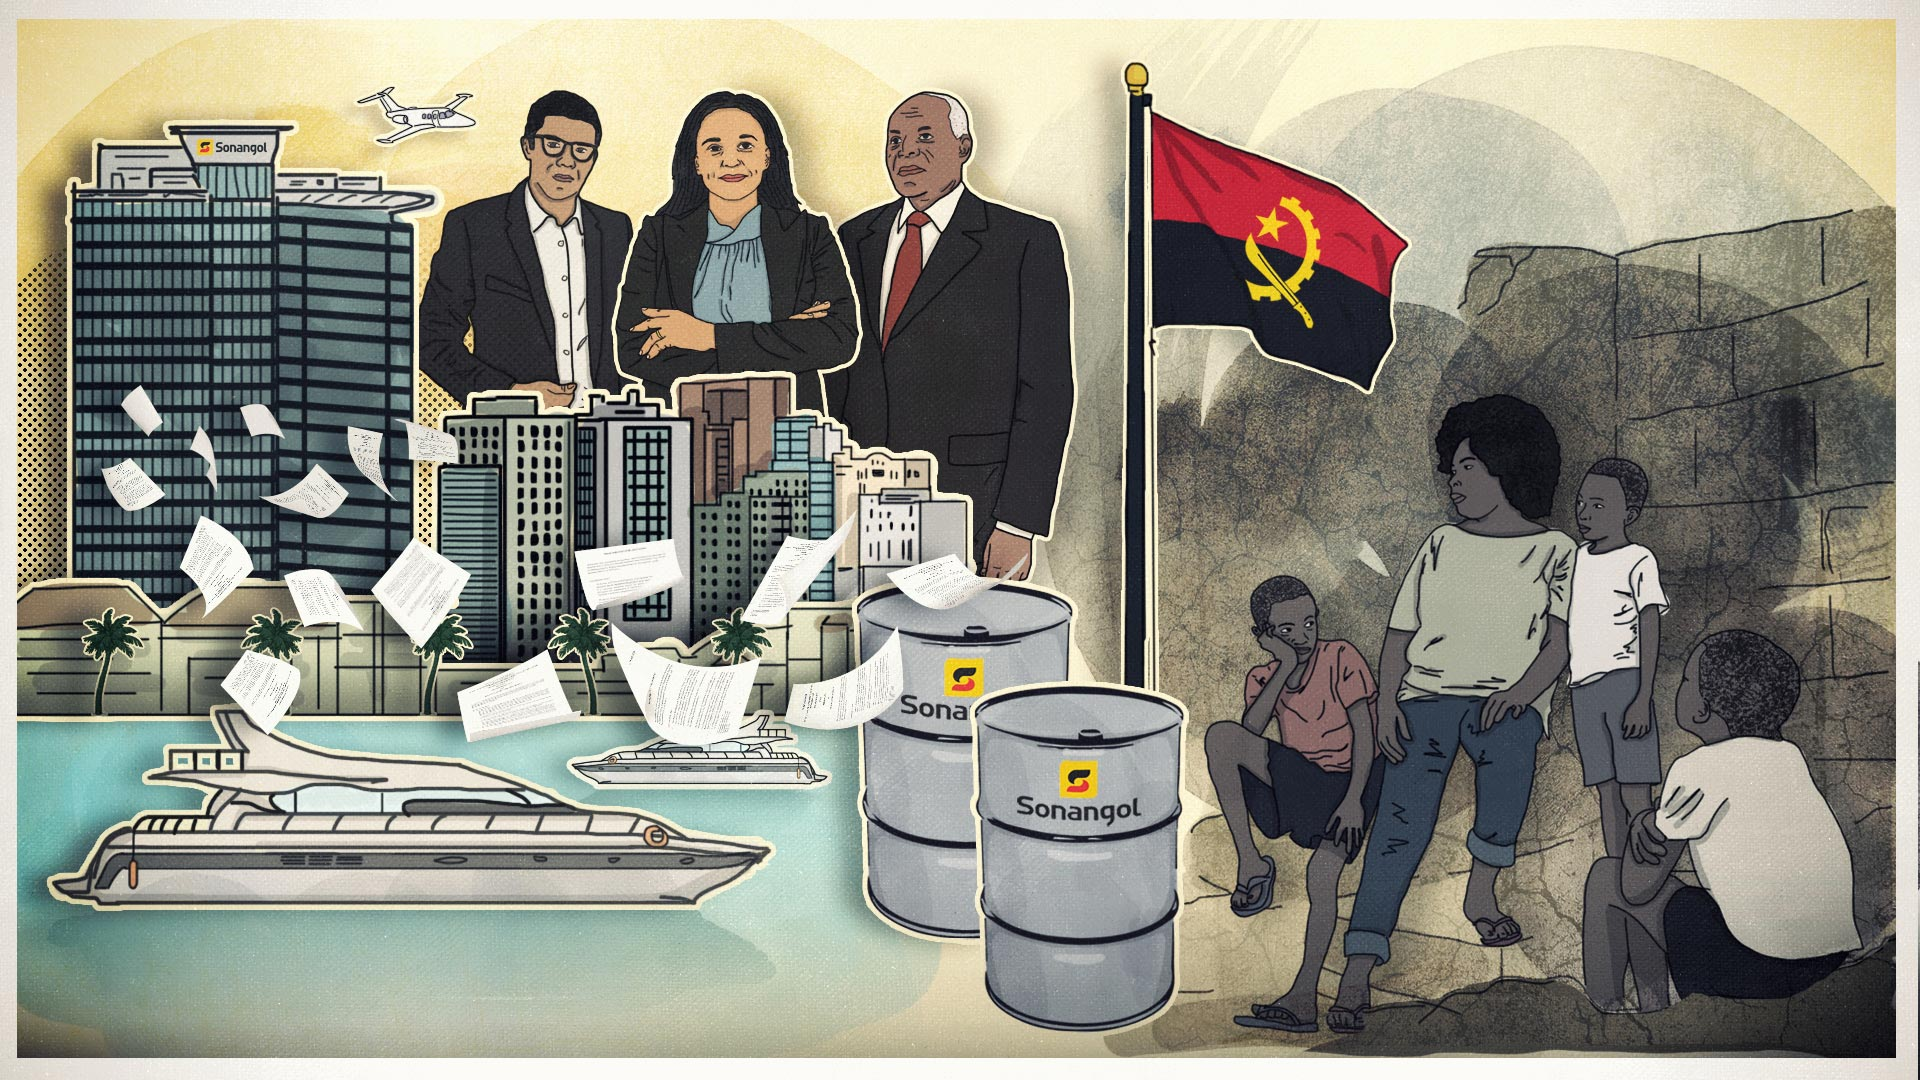 Revealed: How much consulting giants made from Isabel dos Santos' time as Sonangol chair